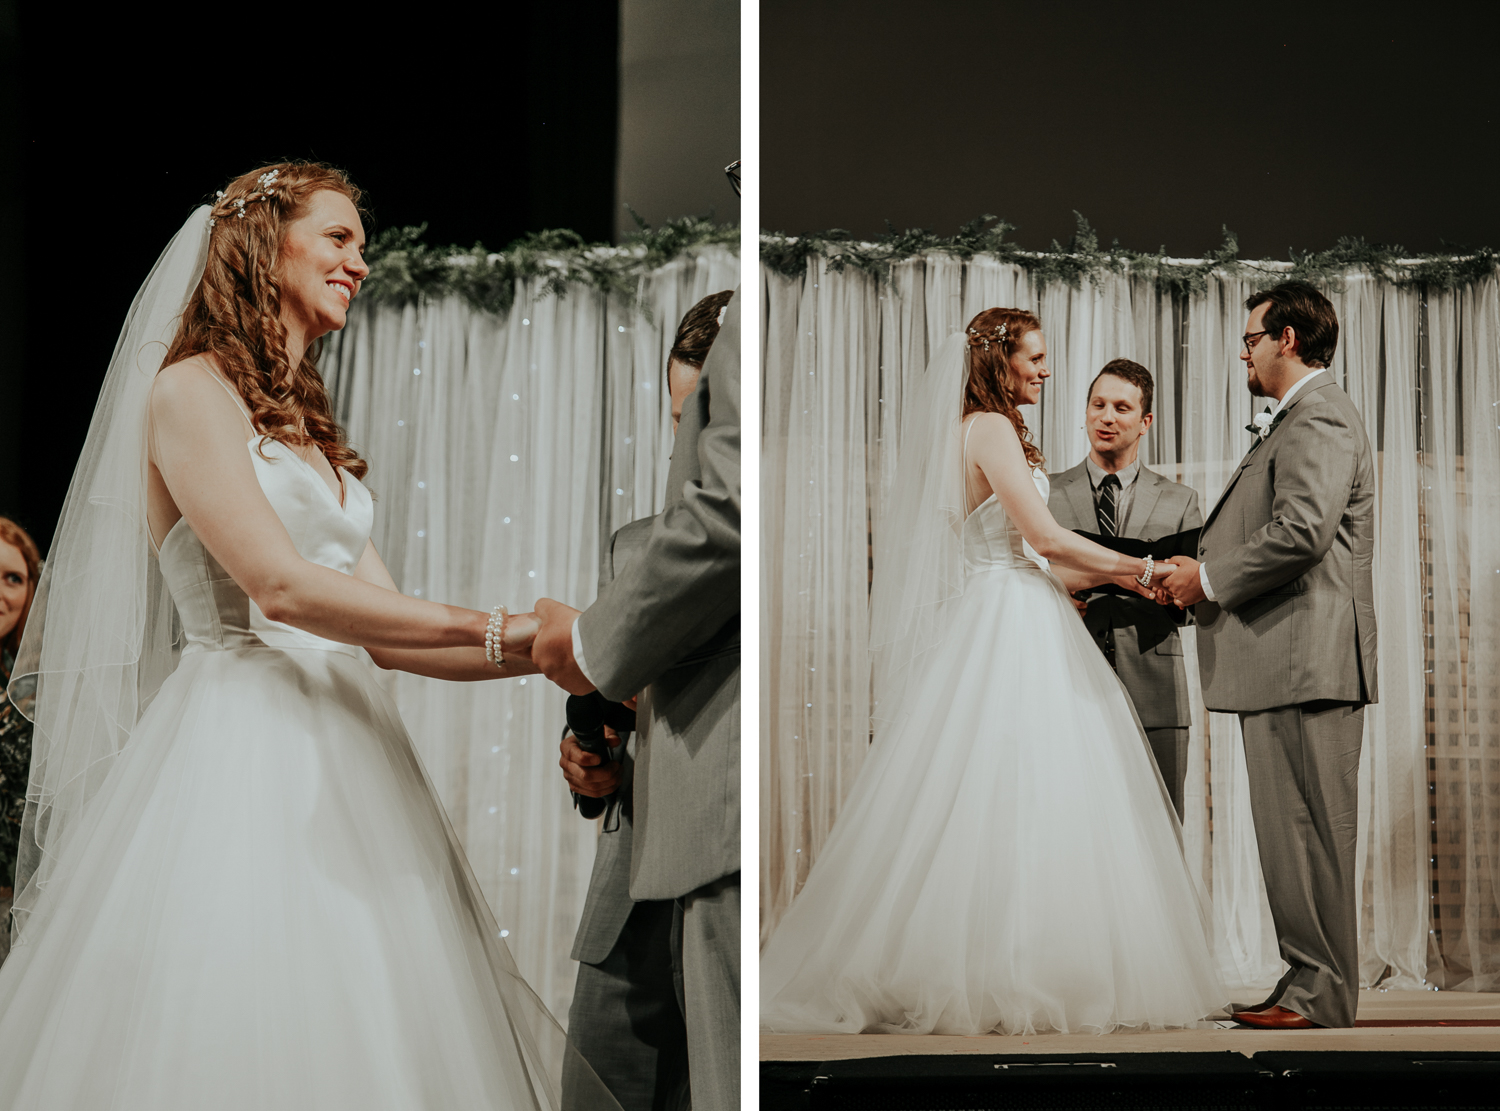 lethbridge-wedding-photographer-love-and-be-loved-photography-dan-tynnea-picture-image-photo-149.jpg